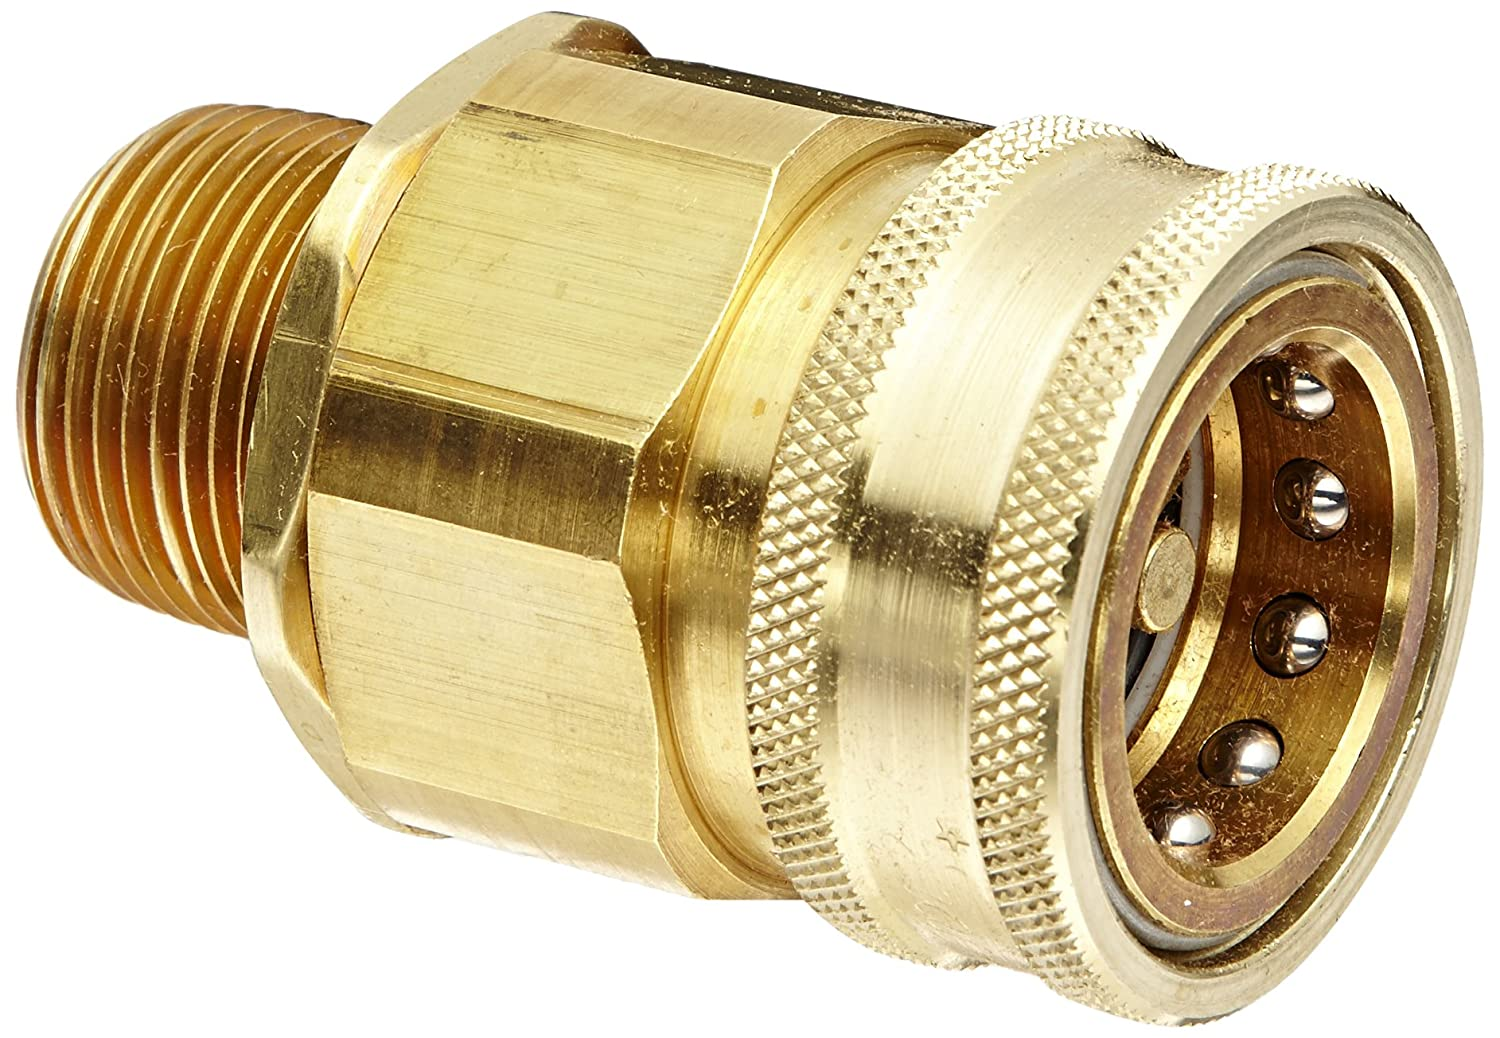 Snap-Tite BVHC16-16M Brass H-Shape Quick-Disconnect Hose Coupling 1 NPTF Male x 1 Coupling Size 1 NPTF Male x 1 Coupling Size Sleeve-Lock Socket